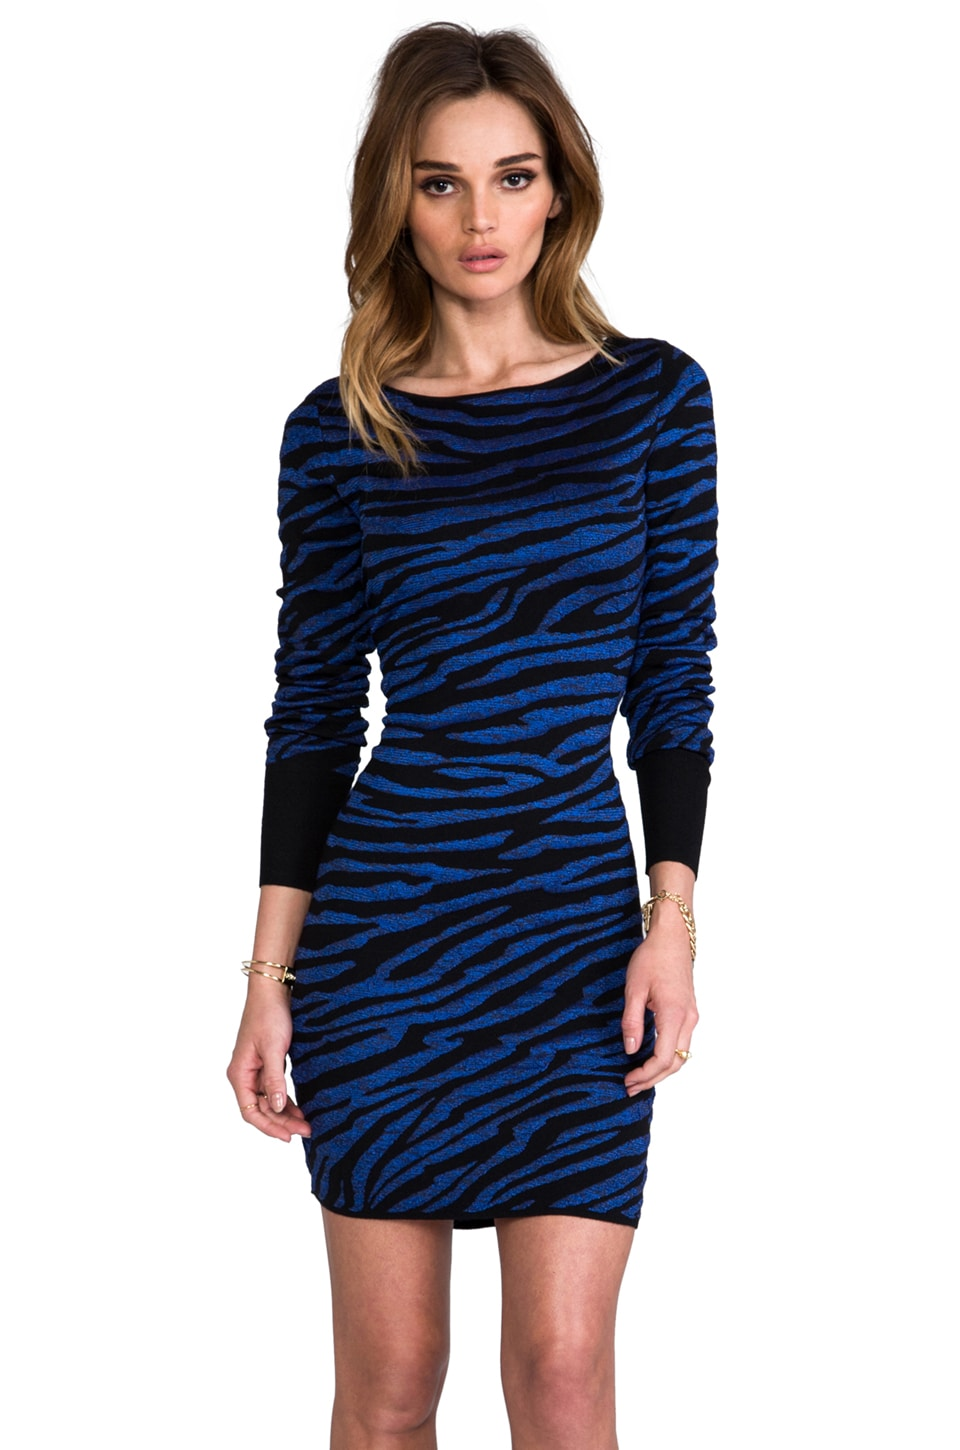 Diane von Furstenberg Evana Dress in Black/Tanzanite Blue